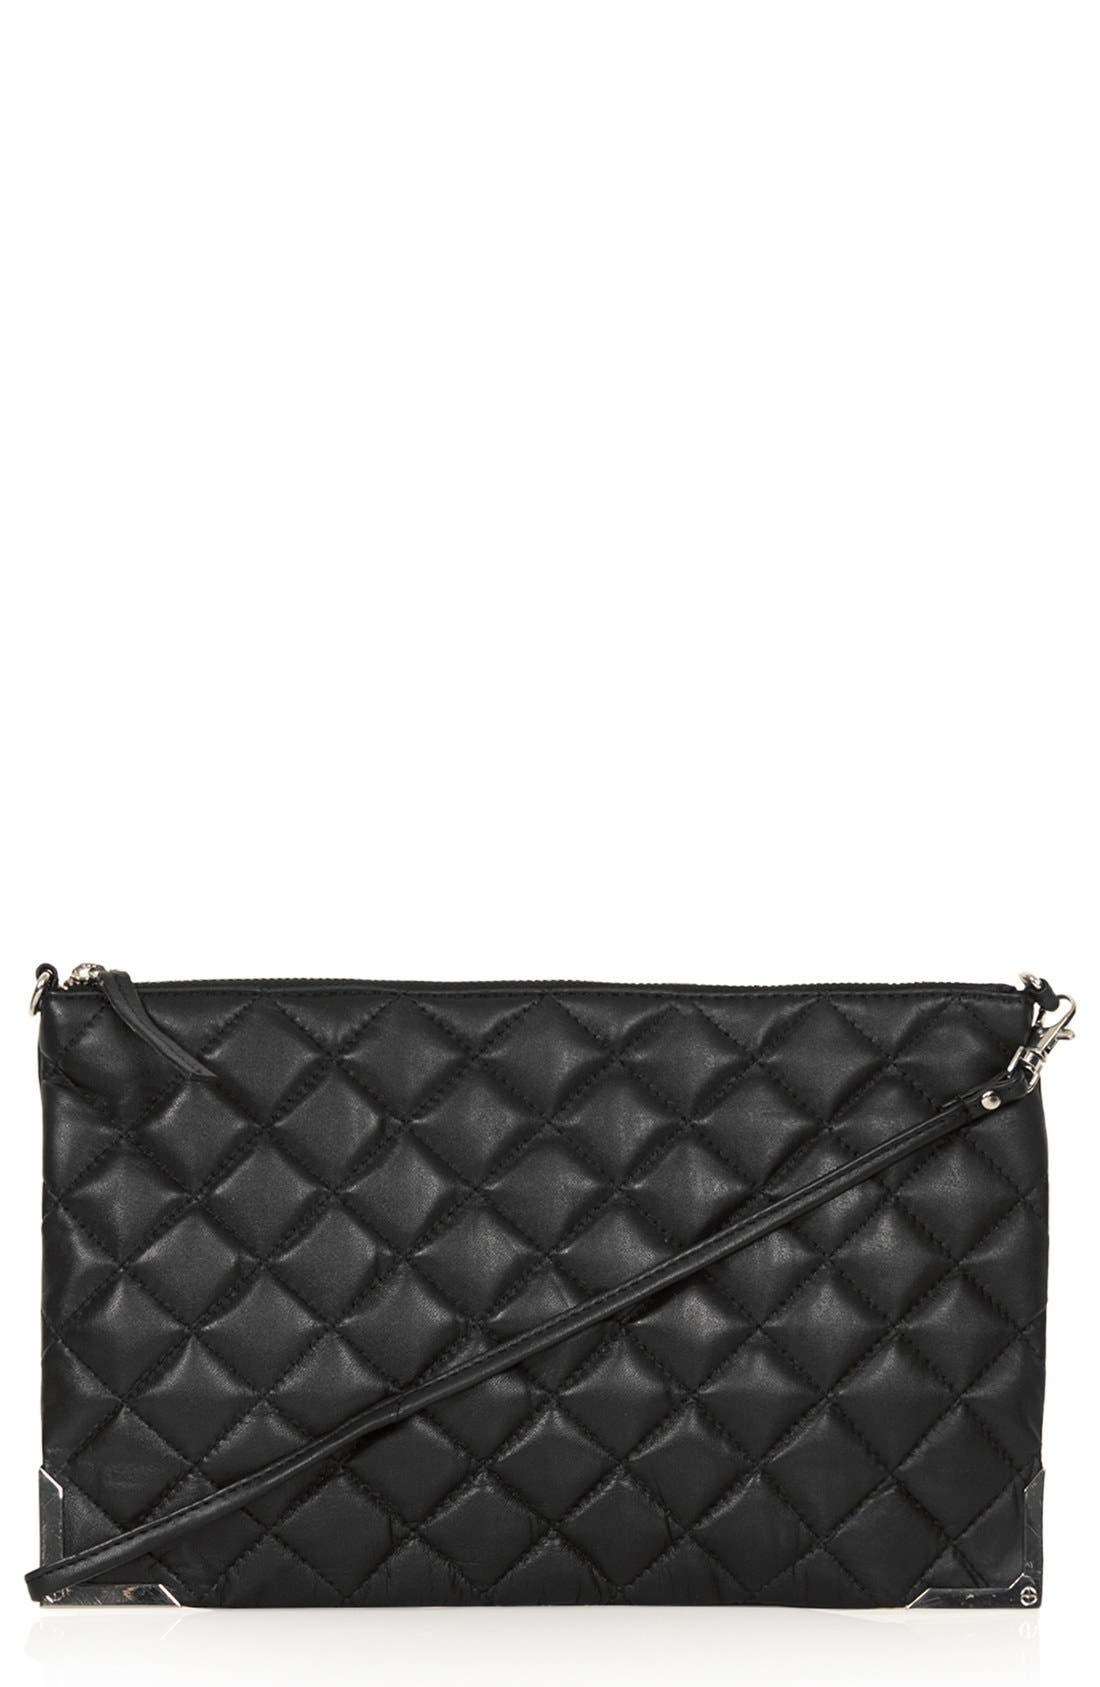 Alternate Image 1 Selected - Topshop Metal Corner Quilted Leather Clutch